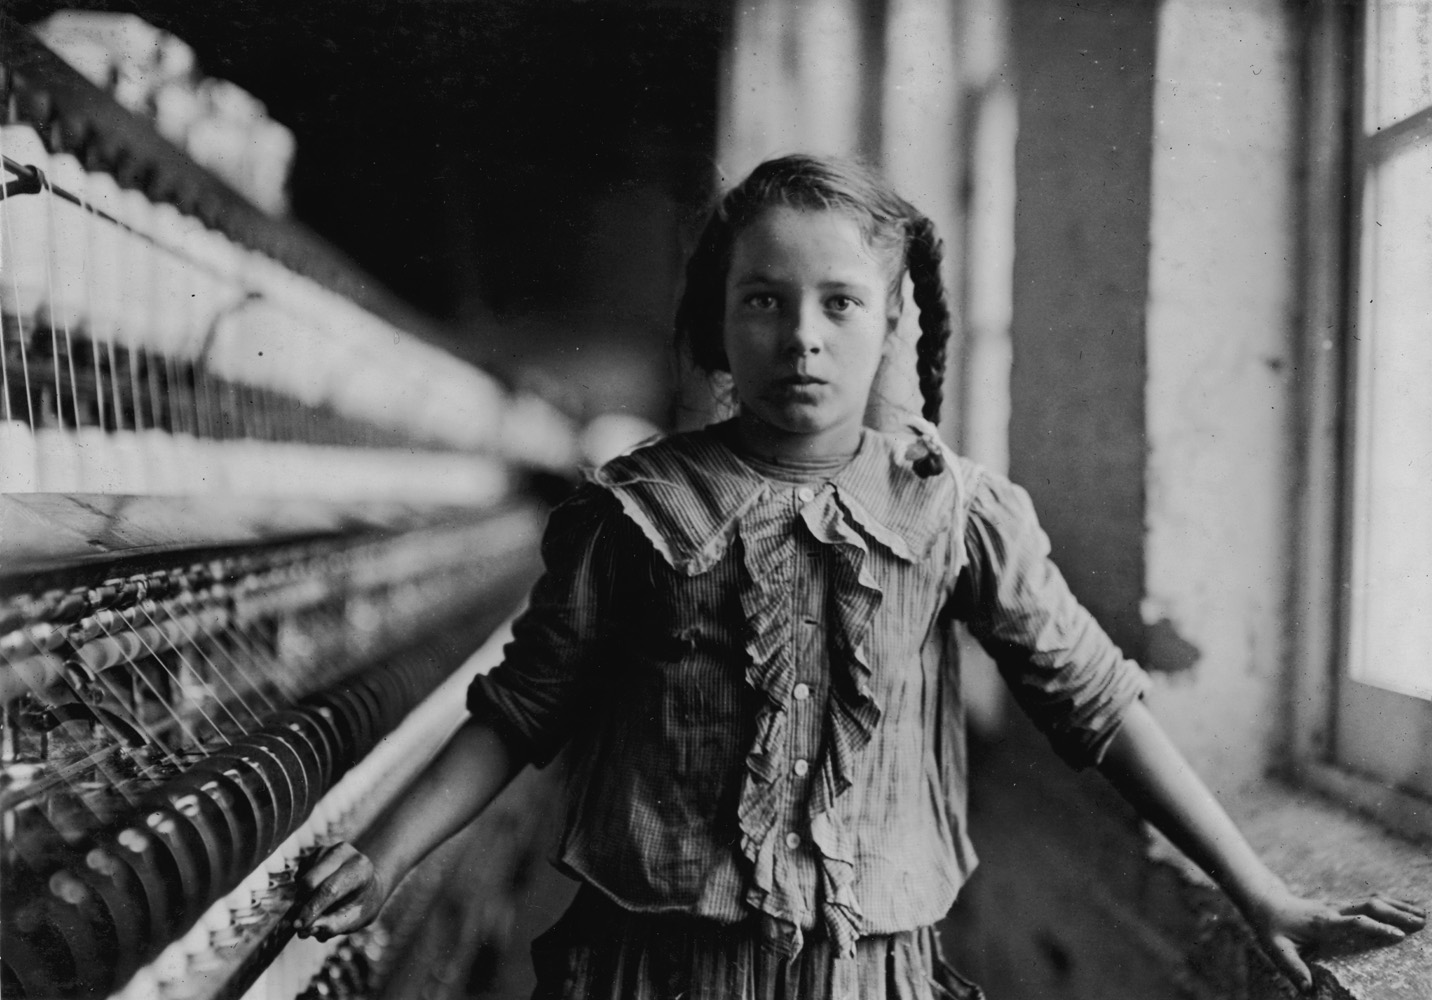 "Cora Lee Griffin, spinner in cotton mill, 12 years old, Whitnel, North Carolina, 1908.                                 One of the spinners in Whitnel Cotton Mfg. Co. N.C. She was 51 inches high. Had been in mill 1 year. Some at night. Runs 4 sides, 48 cents a day. When asked how old, she hesitated, then said  I don't remember.  Then confidentially,  I'm not old enough to work, but I do just the same.  Out of 50 employees, ten children about her size. —Hine's original caption                               ""She had regrets about not getting the education she had desired. She only got as far as the sixth grade. At that point, she started working full time. But she wanted an education, and really valued it, and it was a priority for her that we got a good education— whatever it took to send us to college."" —Daughter of Cora Lee Griffin"